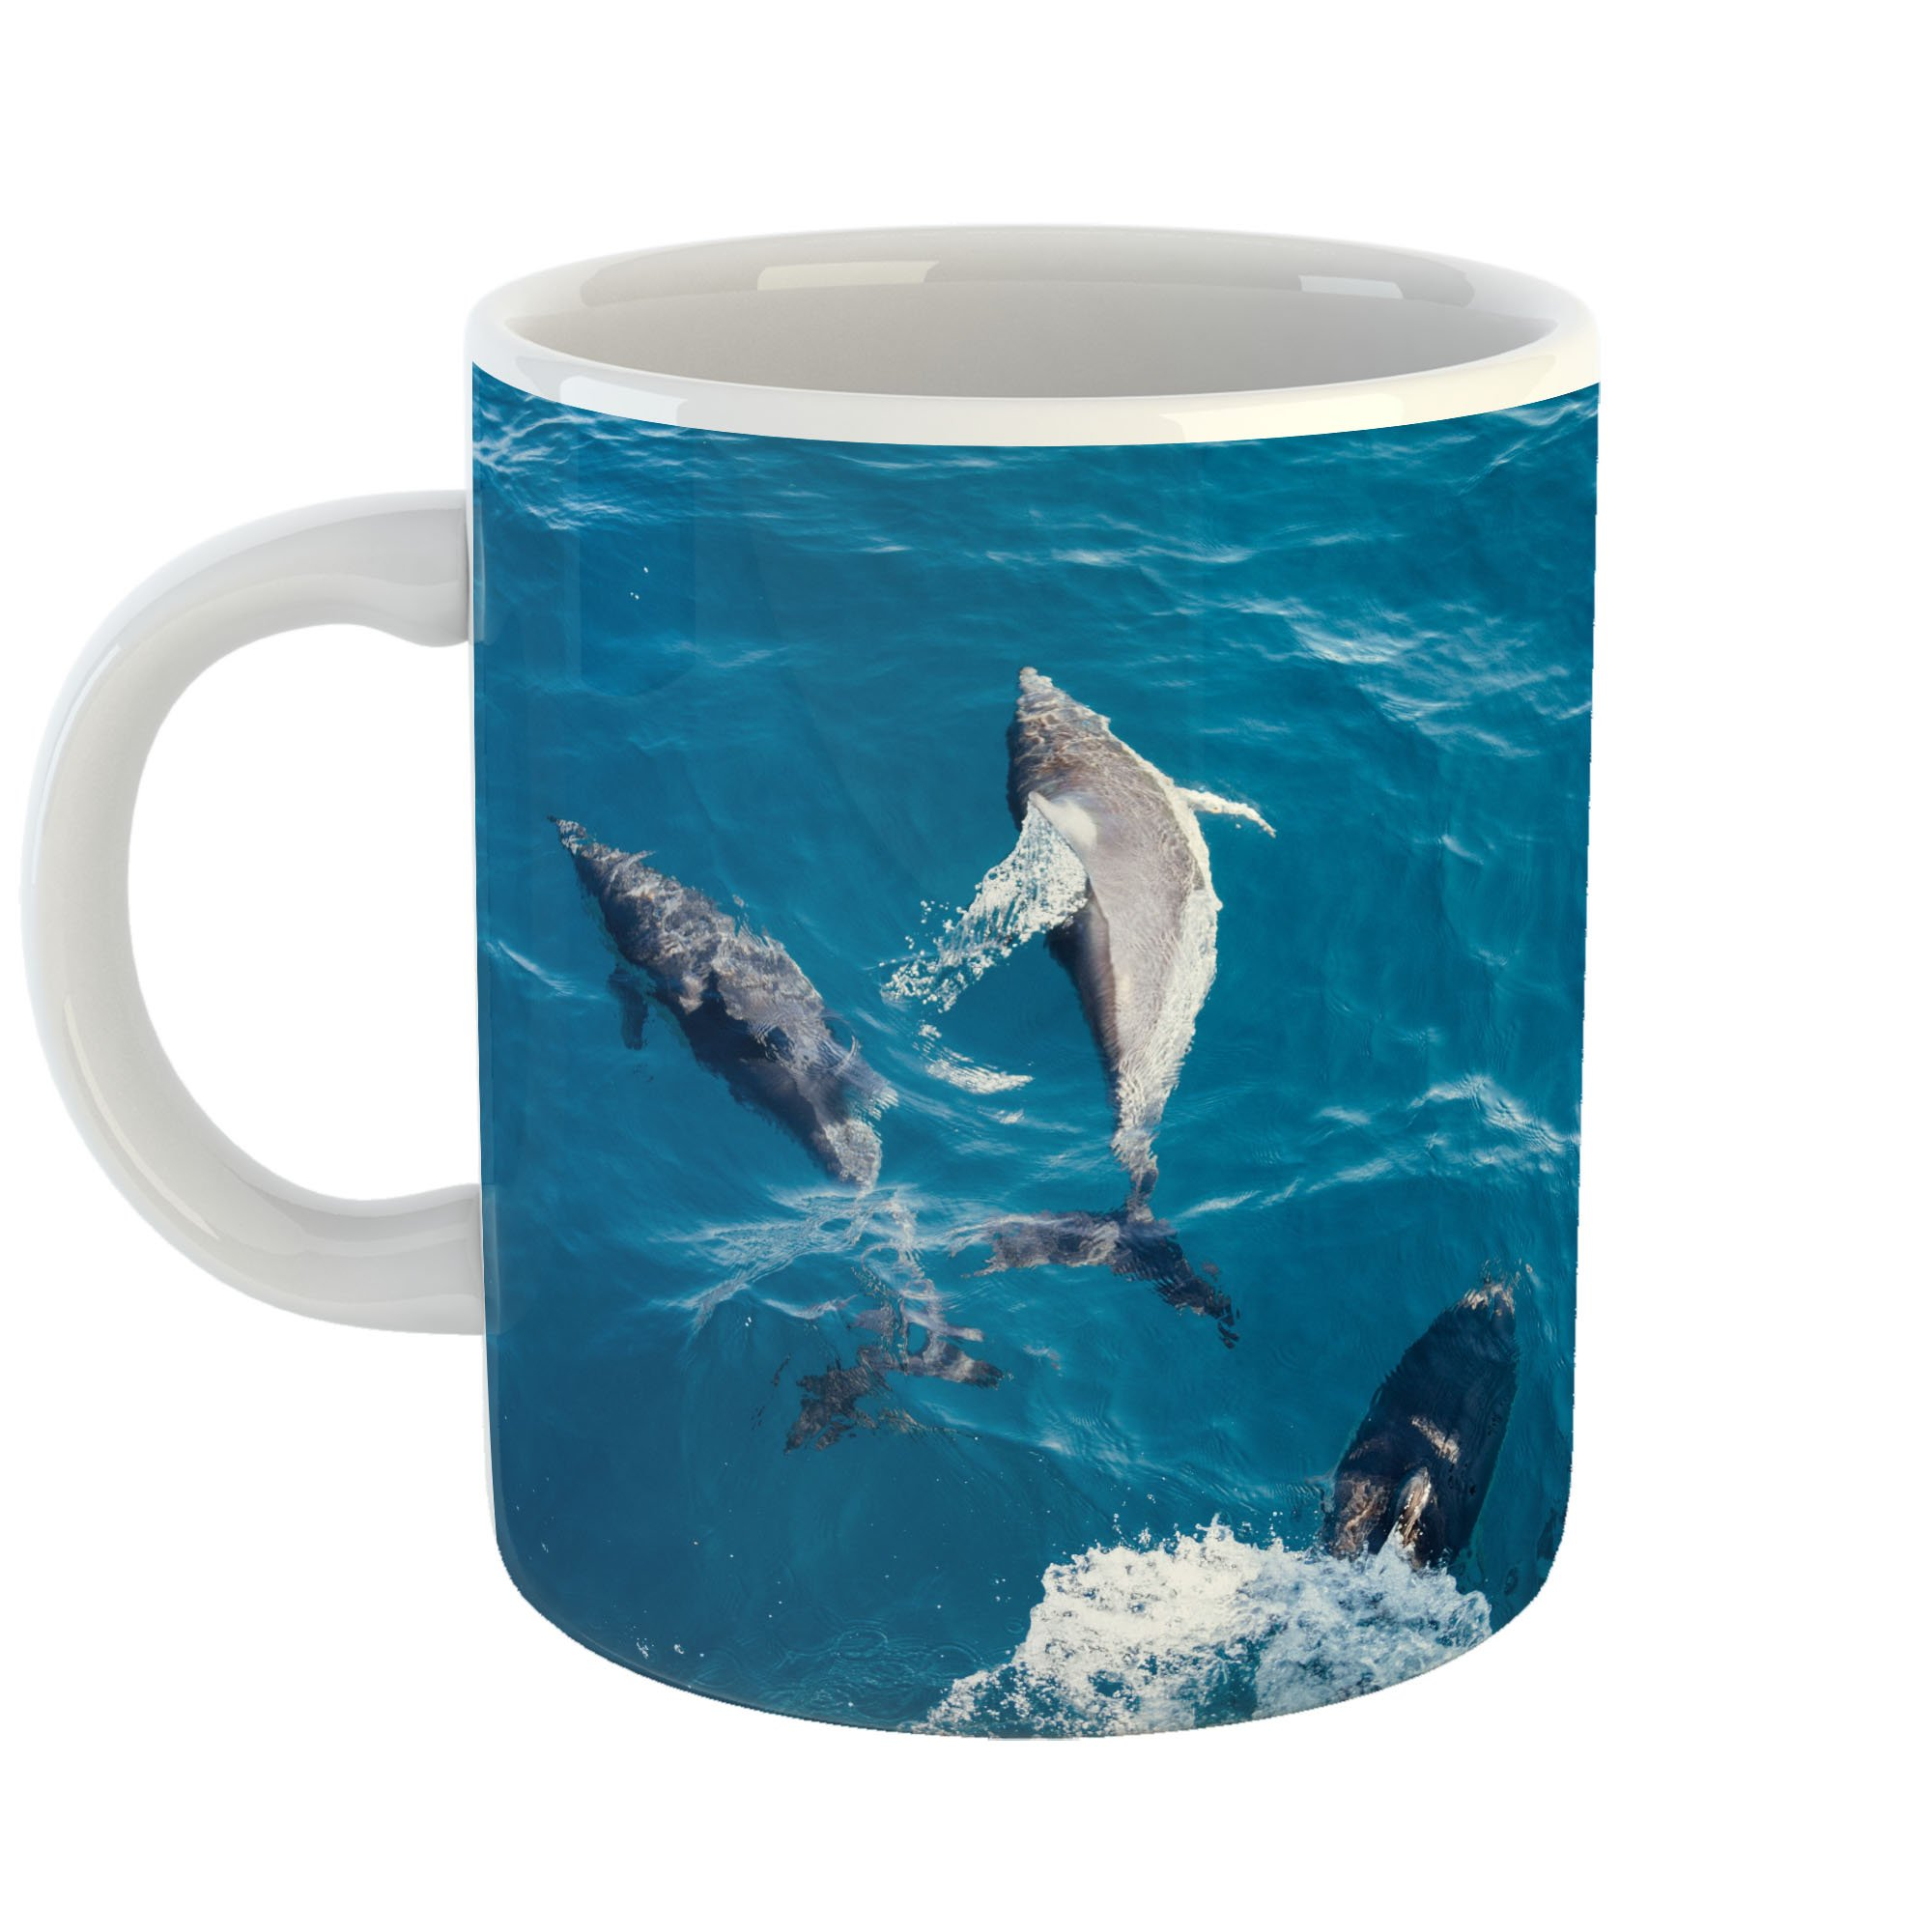 Westlake Art - Hotel Dolphin - 11oz Coffee Cup Mug - Modern Picture Photography Artwork Home Office Birthday Gift - 11 Ounce (3768-CE6F2)